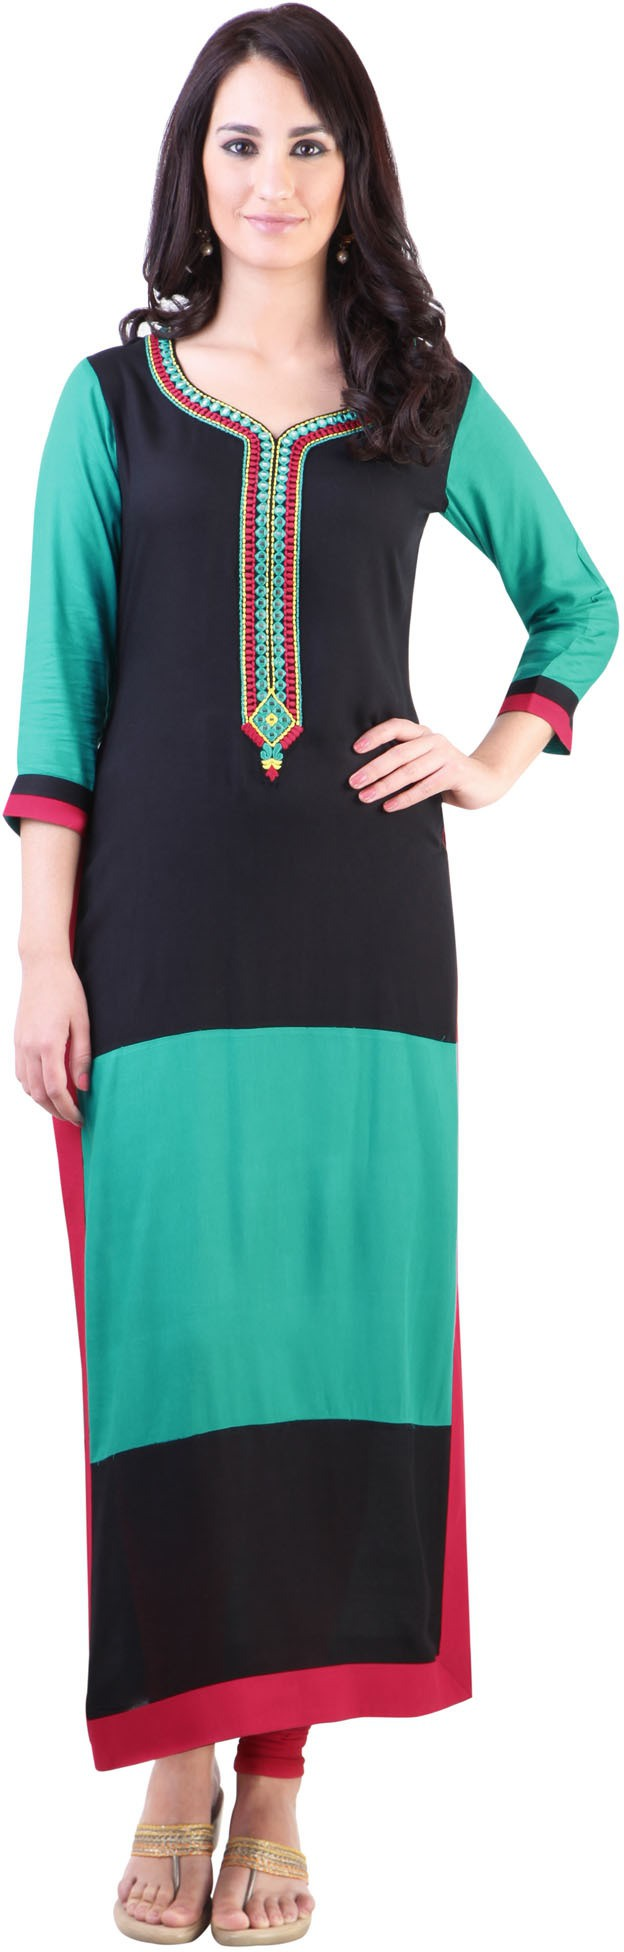 Libas Self Design Womens Straight Kurta(Black, Green)